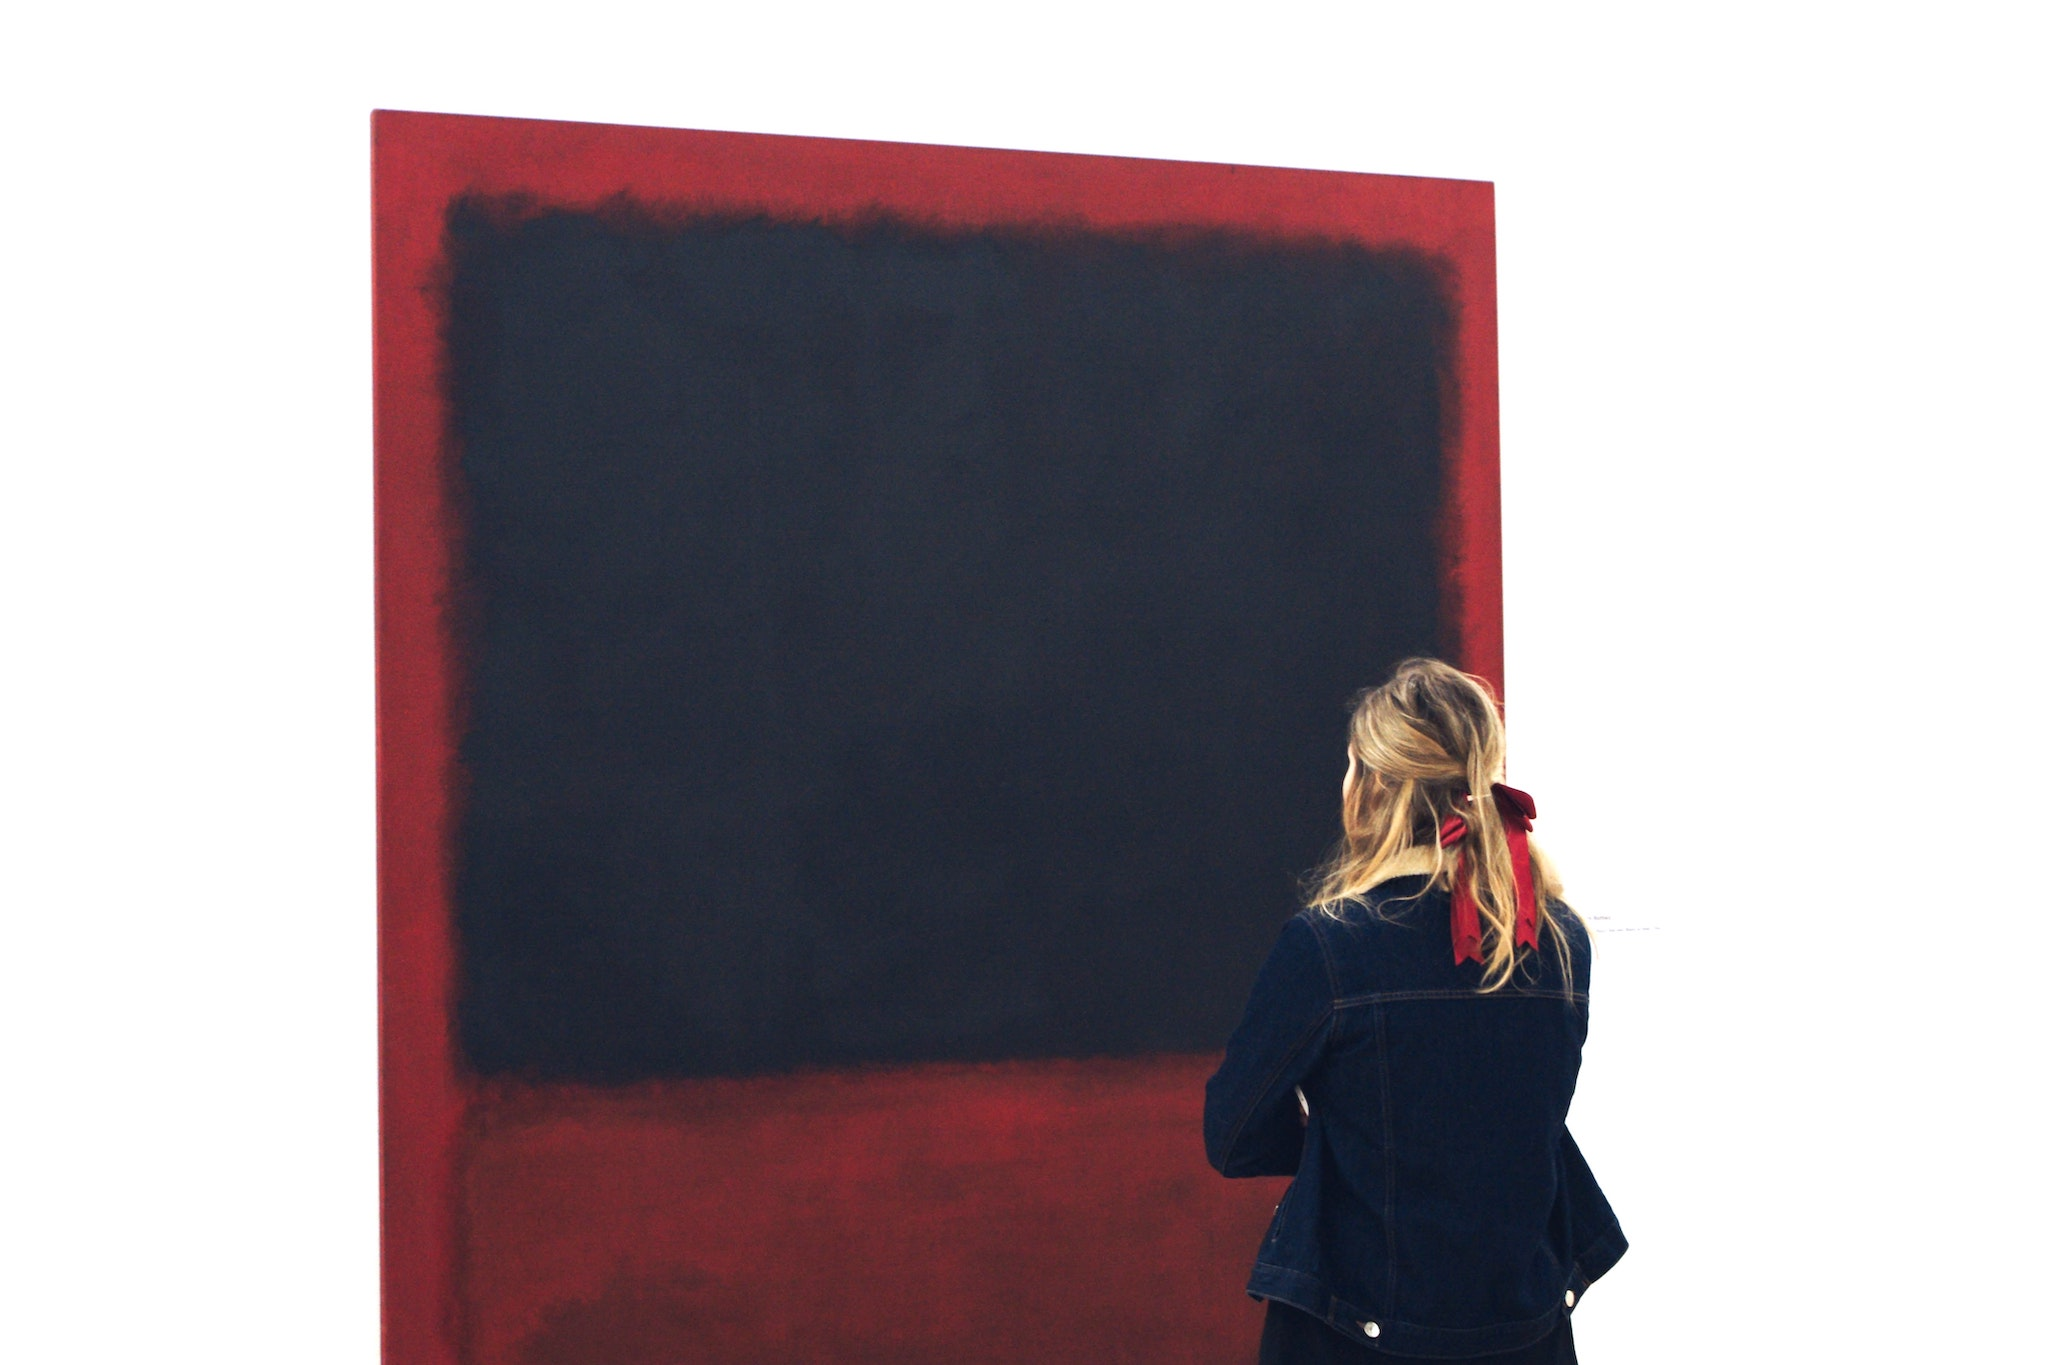 A blonde woman standing infant of a Rothko painting. She's wearing a denim jacket and has a red ribbon in her hair. The Rothko painting is dark red with a black square.